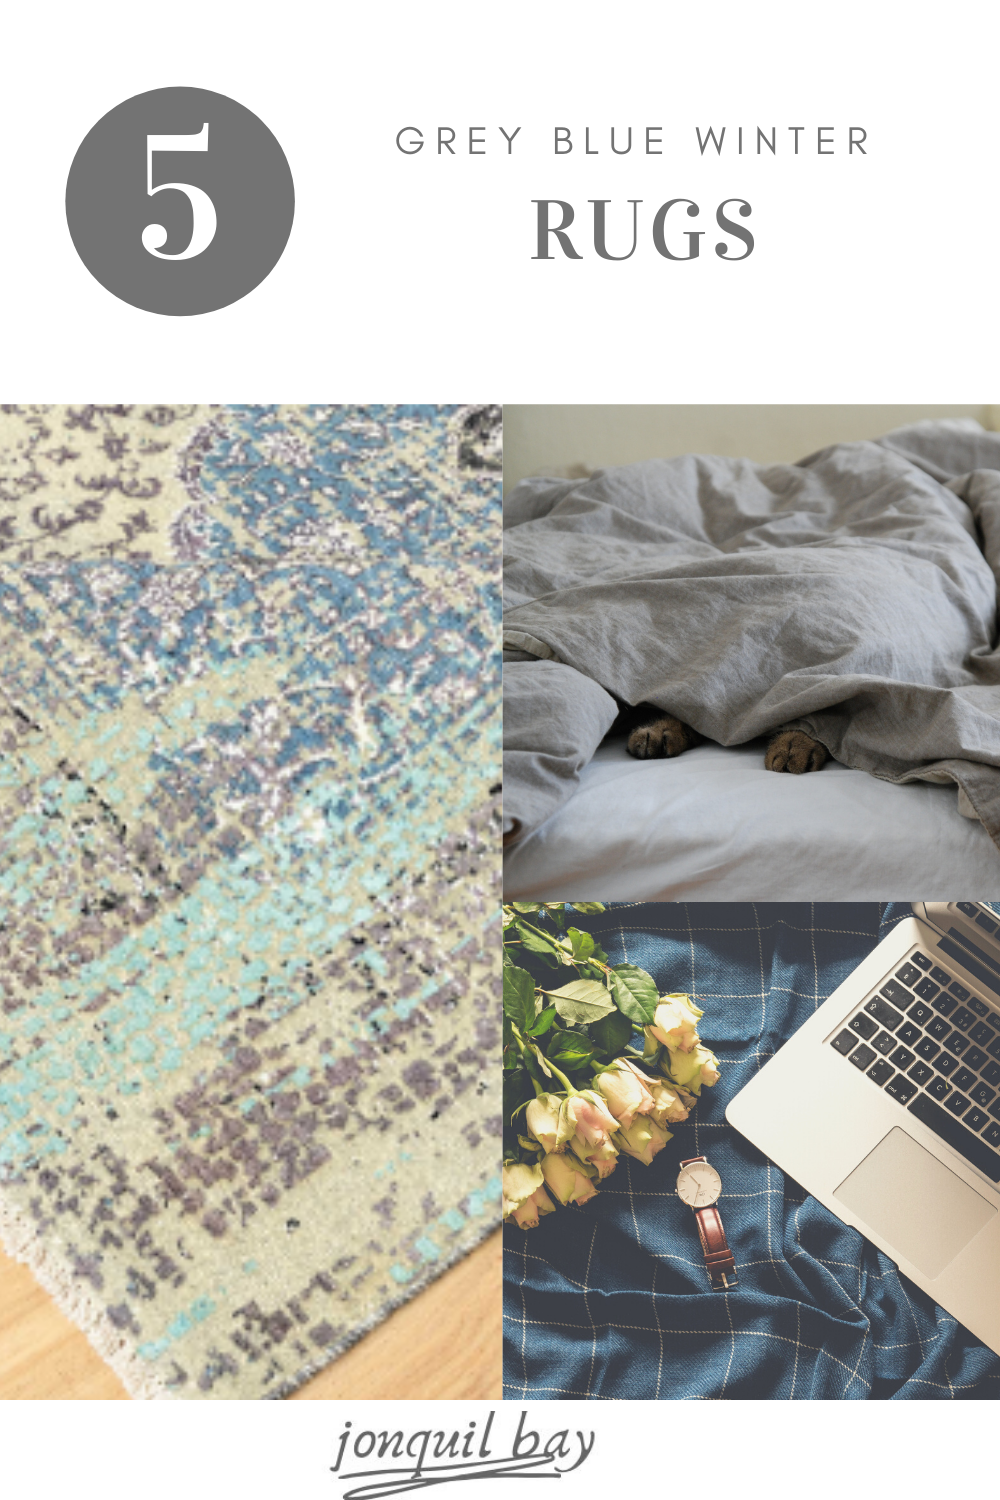 Looking for rugs to round up your winter deocr. Check out these 5 hand-kotted rugs to add finish your look and make your space a winter wonderland! #winterdecor #holidaydecor #bluedecor #greydecor #decorideas #livingroomdecor #cozydecor #bedroomdecor